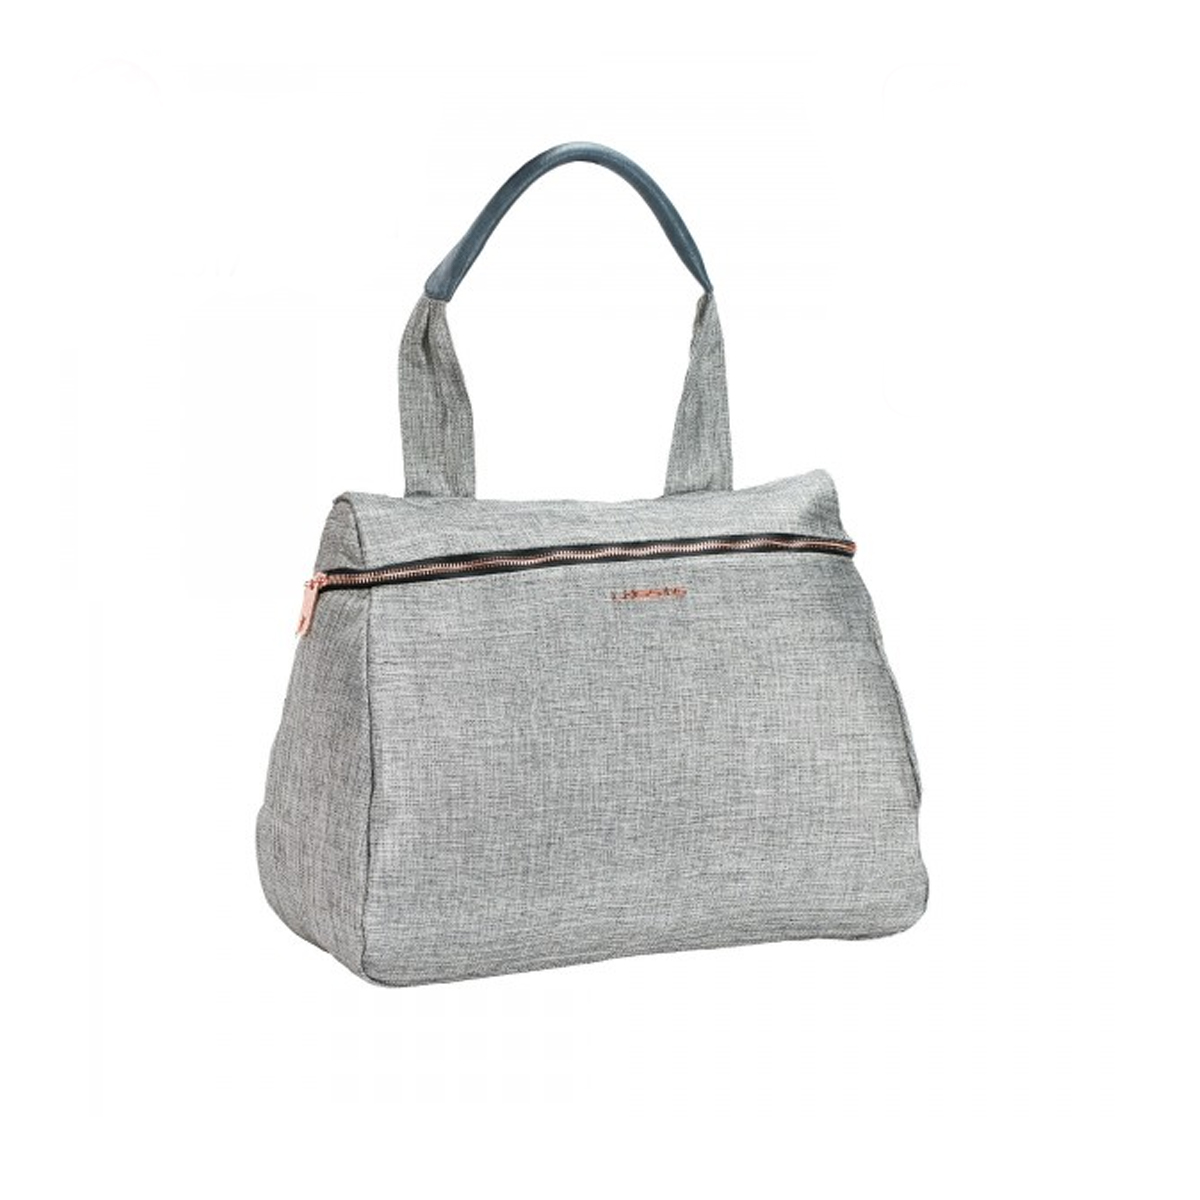 Gray Glam Rosie Diaper Bag with sparkling features